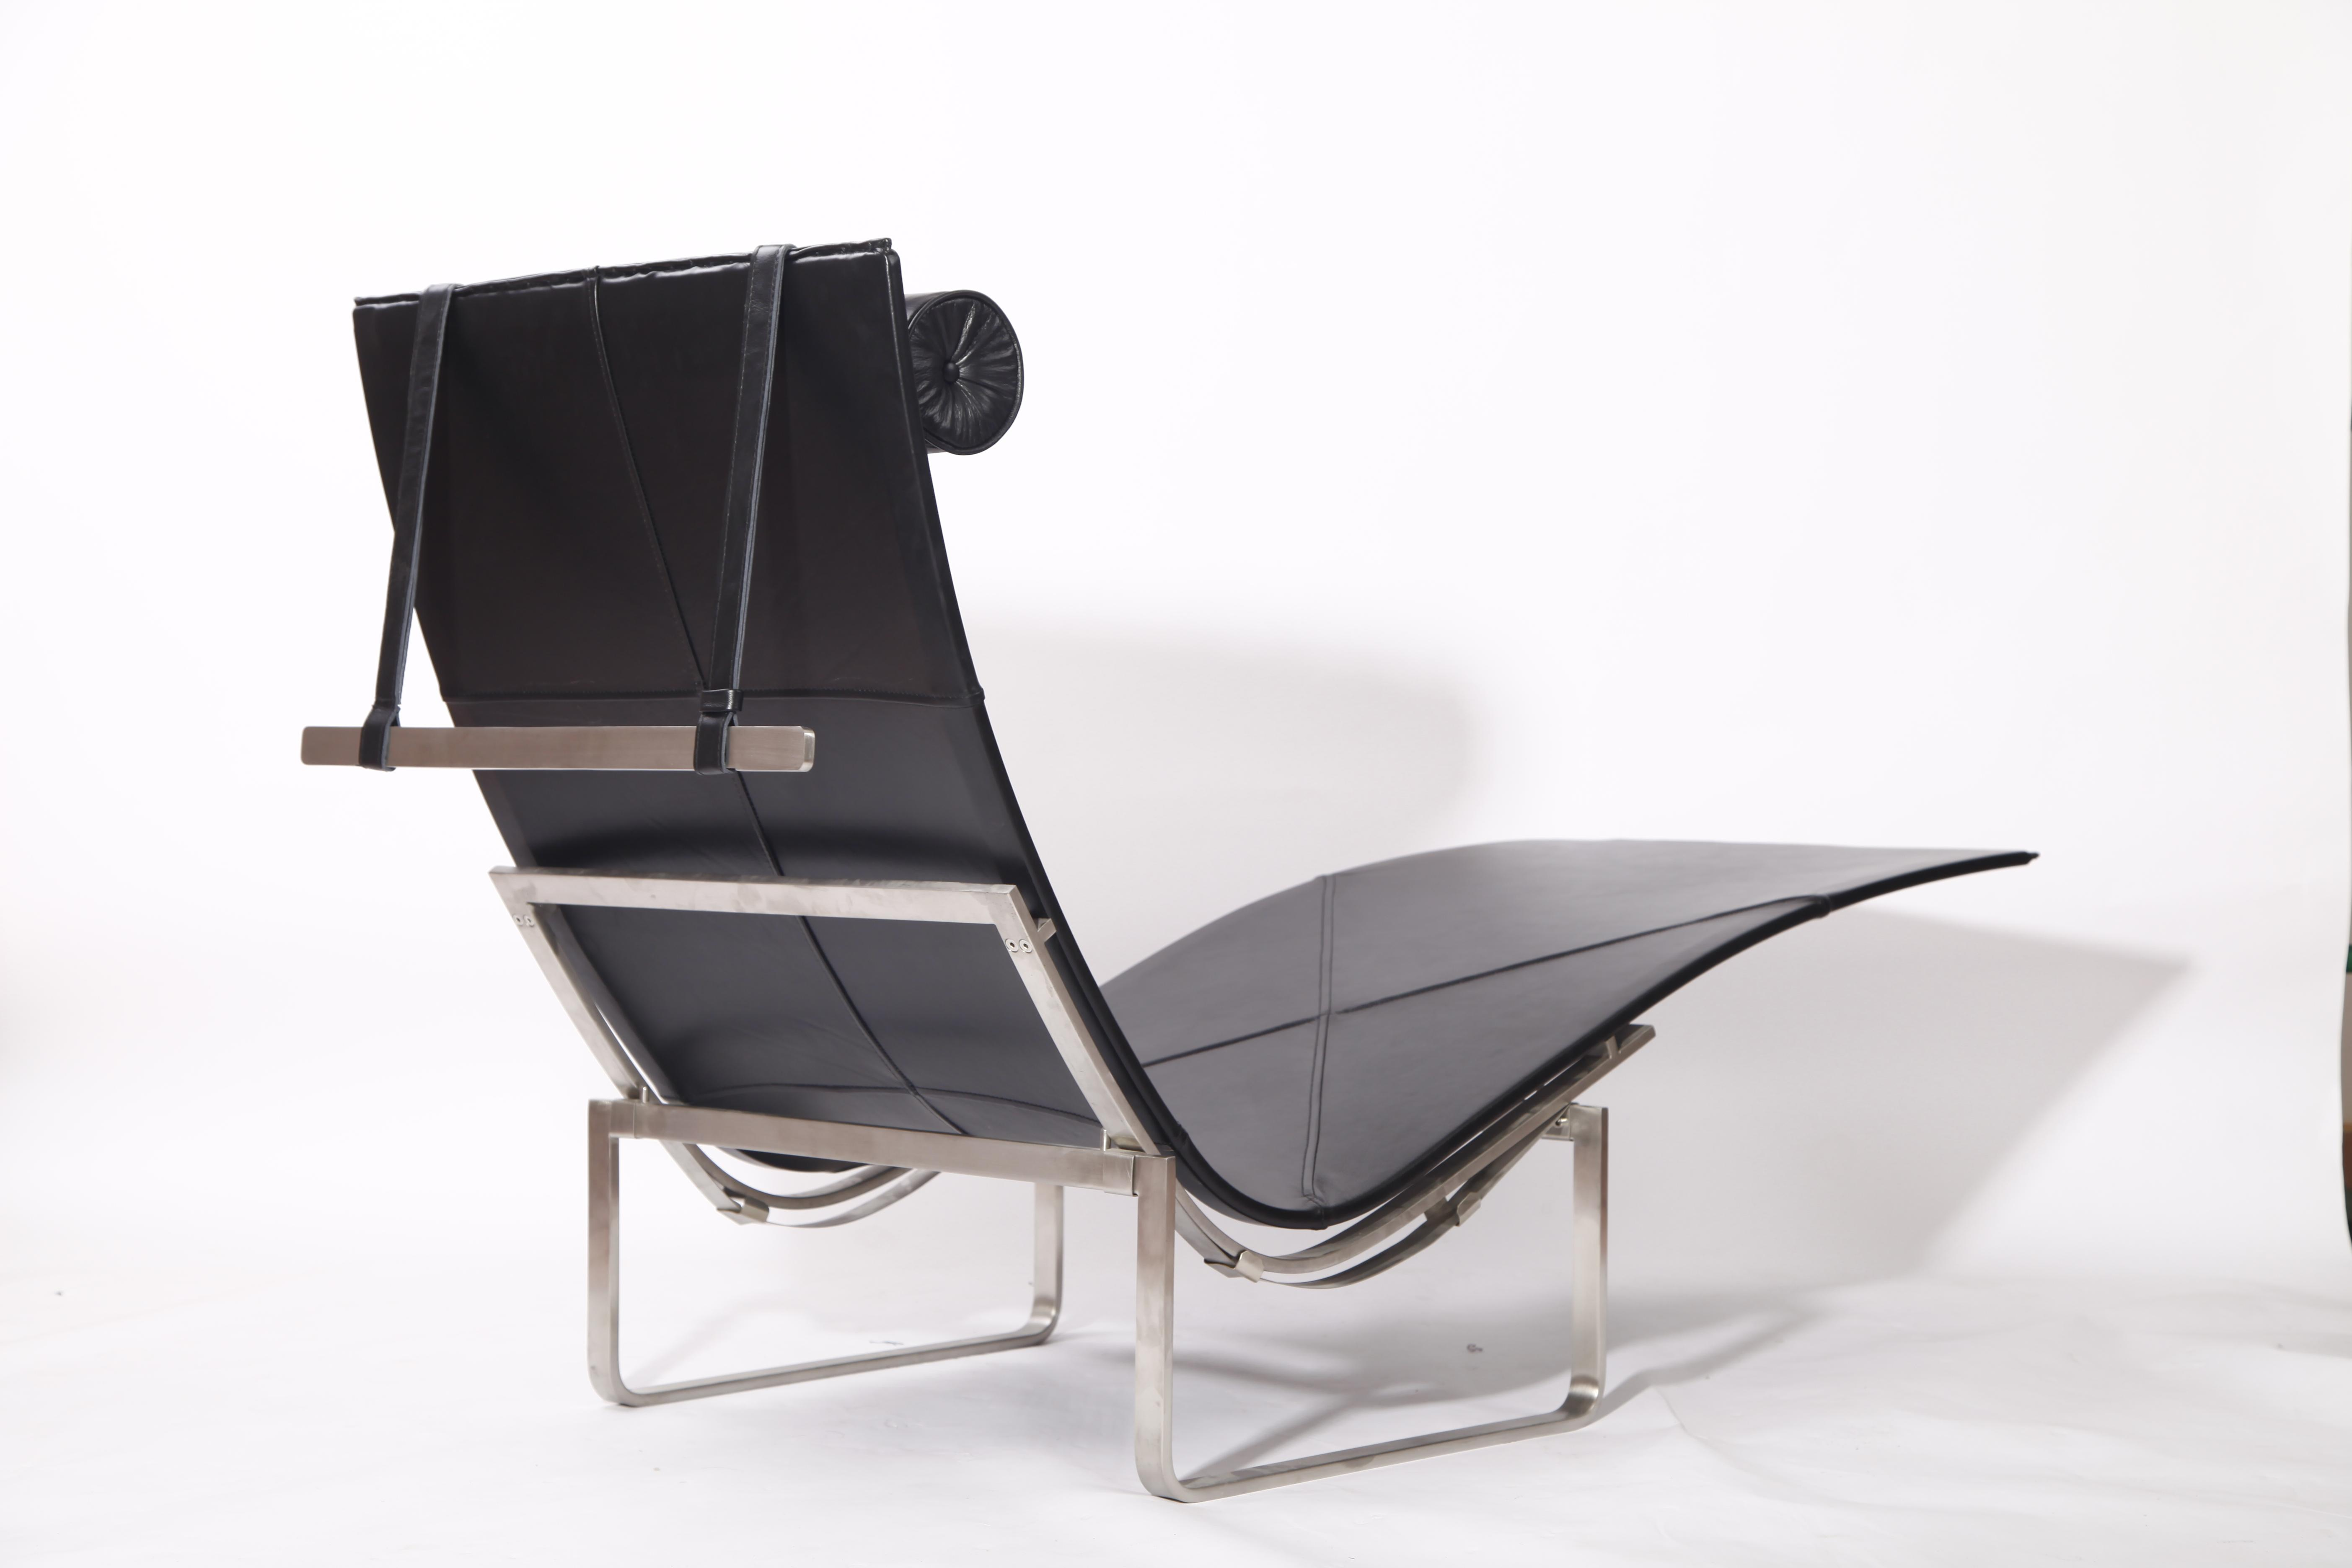 Poul kjaerholm PK24 chair replica